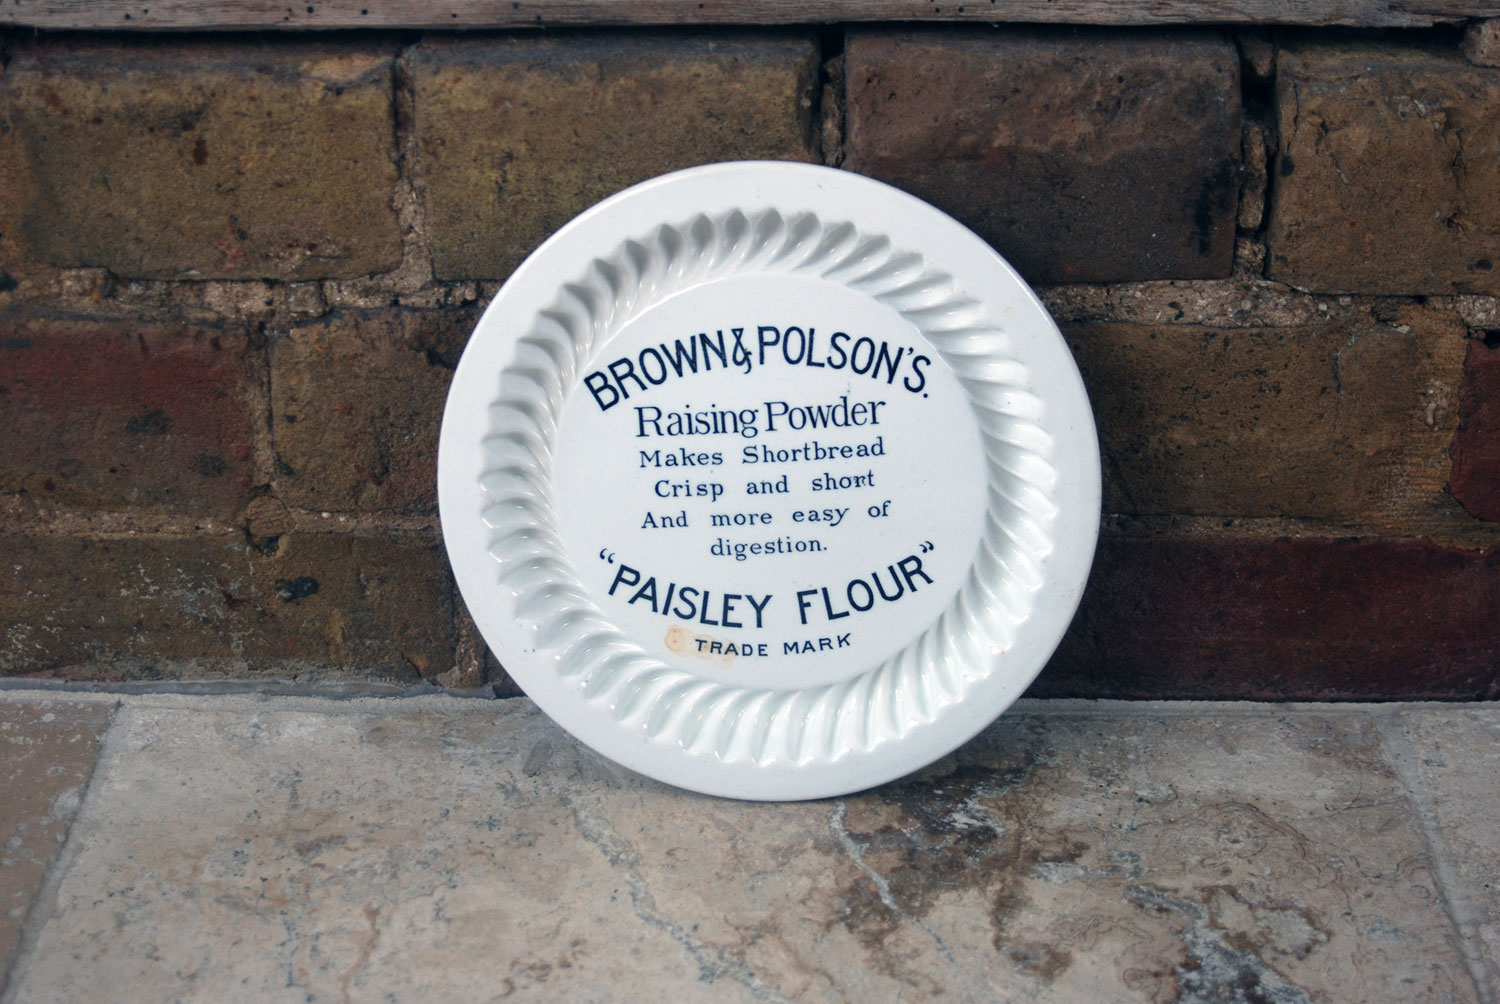 edwardian white ironstone english brown polson paisley flour advertising mold